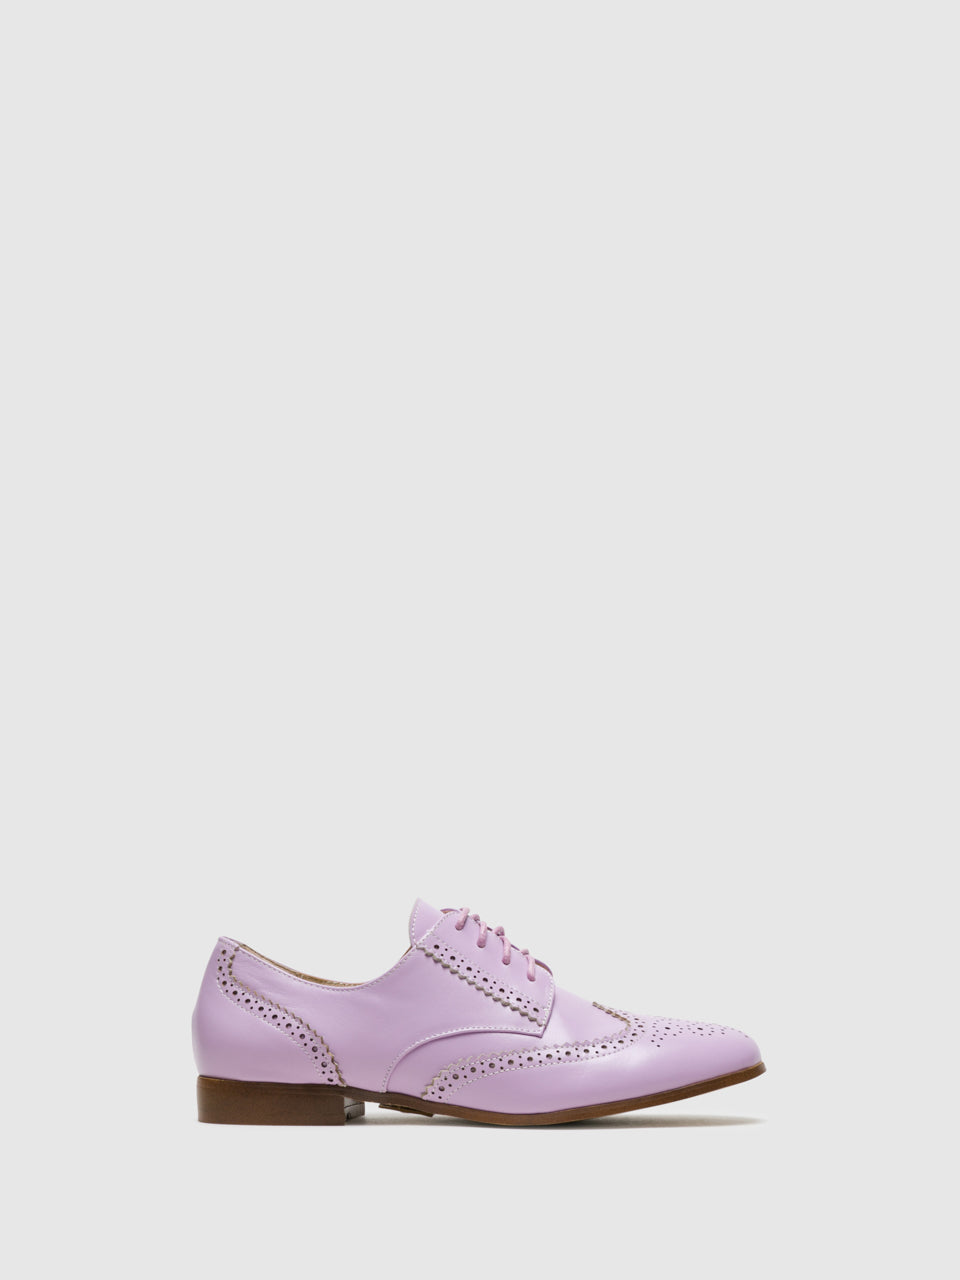 Yull Purple Oxford Shoes